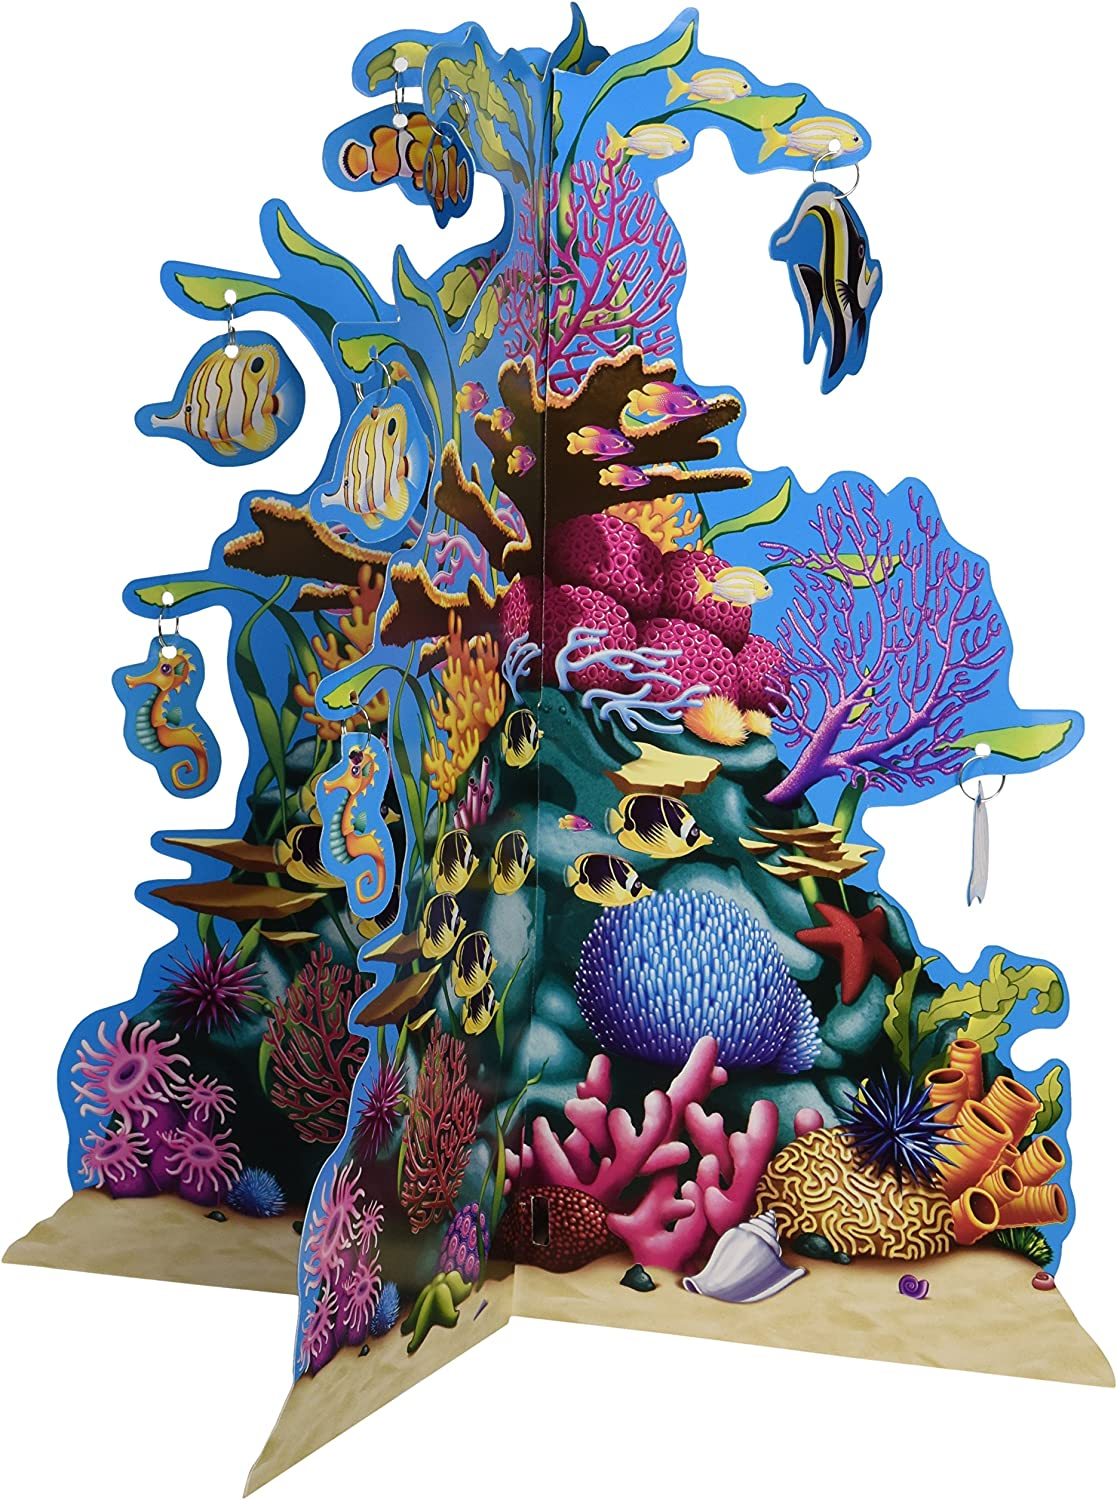 Beistle 3D Coral Reef Centerpiece, 10-Inch,Multicolored